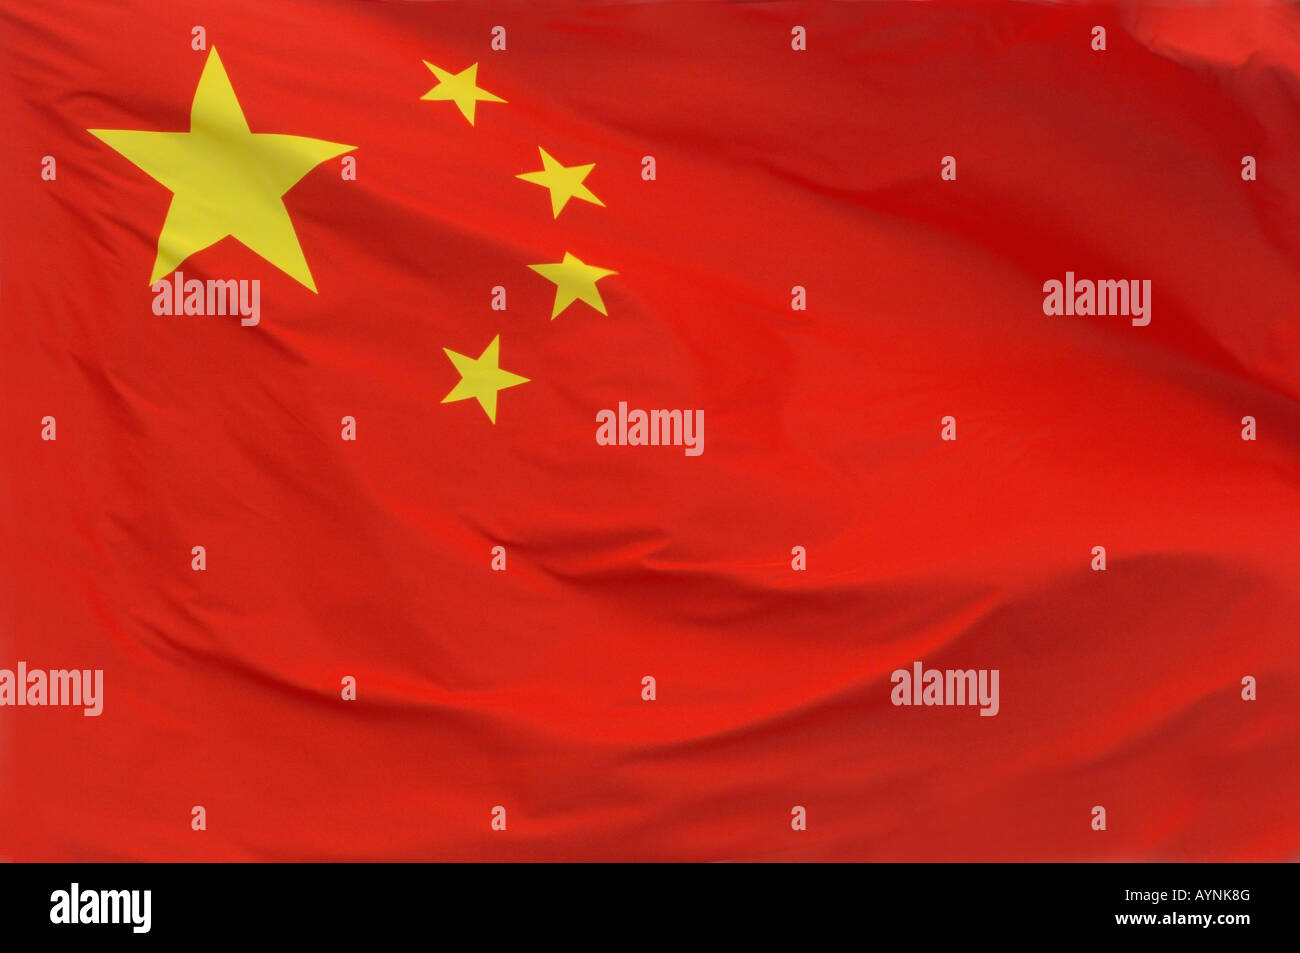 A Chinese flag - Stock Image